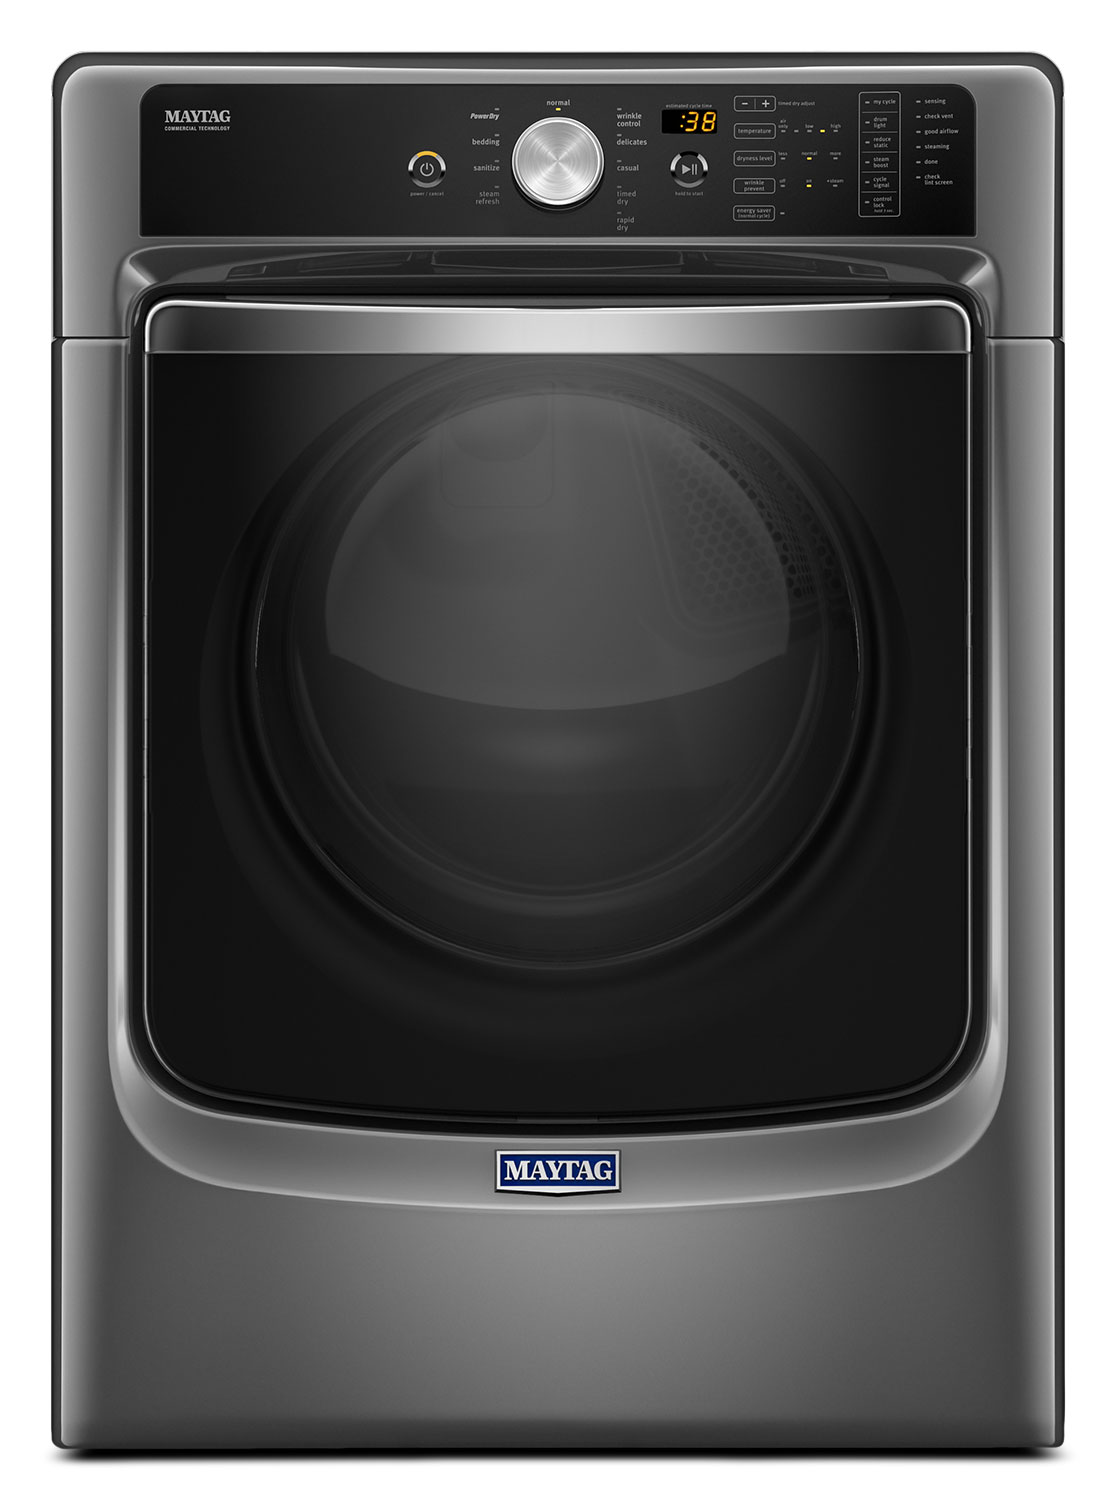 Maytag Metallic Slate Electric Dryer w/ PowerDry System (7.4 Cu. Ft.) - YMED8200FC